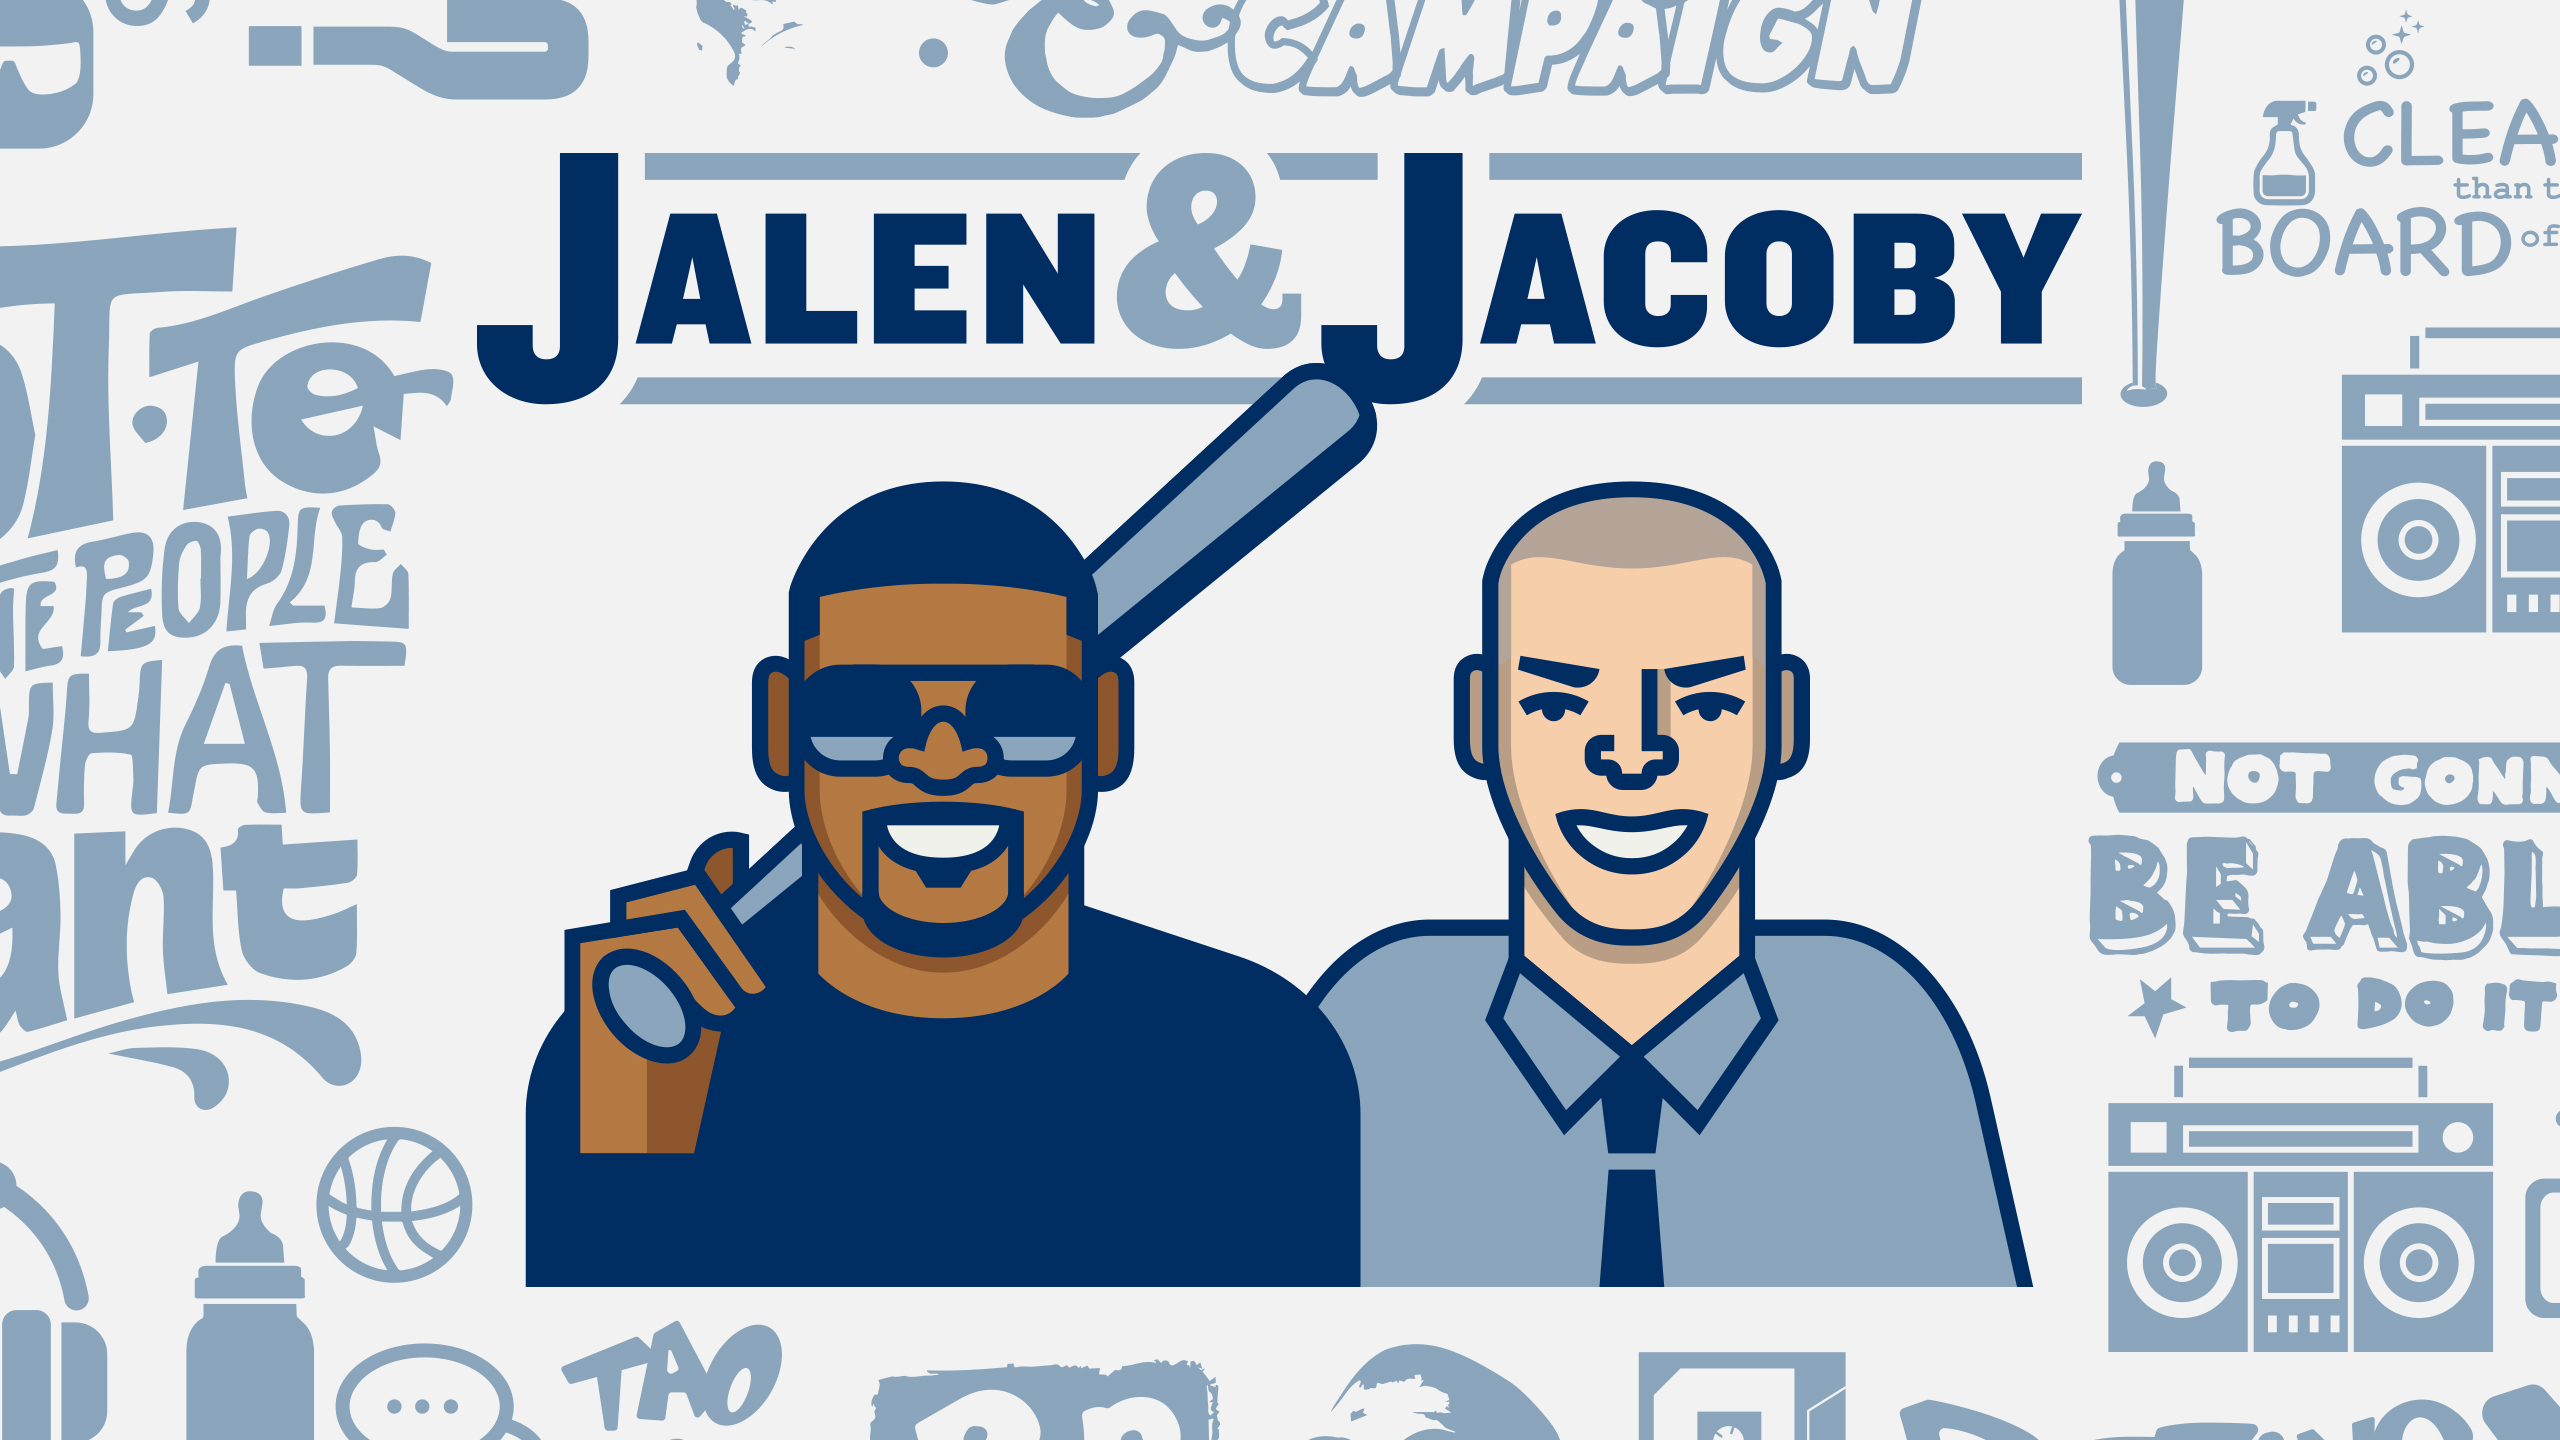 Fri, 10/12 - Jalen & Jacoby